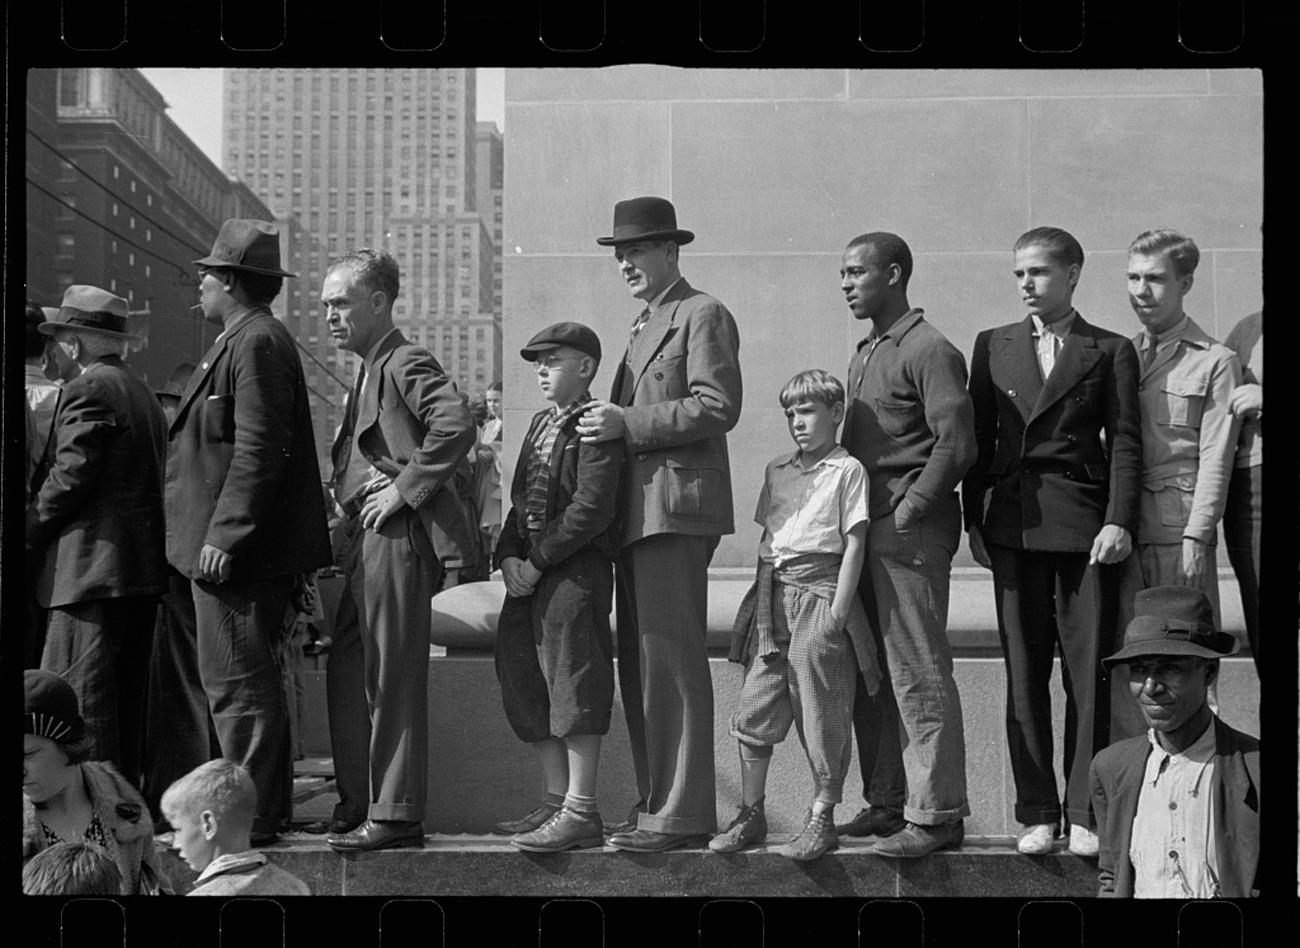 """Watching the parade go by. Cincinnati, Ohio"" in 1938 / Image: John Vachon for the U.S. Farm Security Administration/Office of War Information accessed via the Library of Congress Archives // Published: 3.4.19"